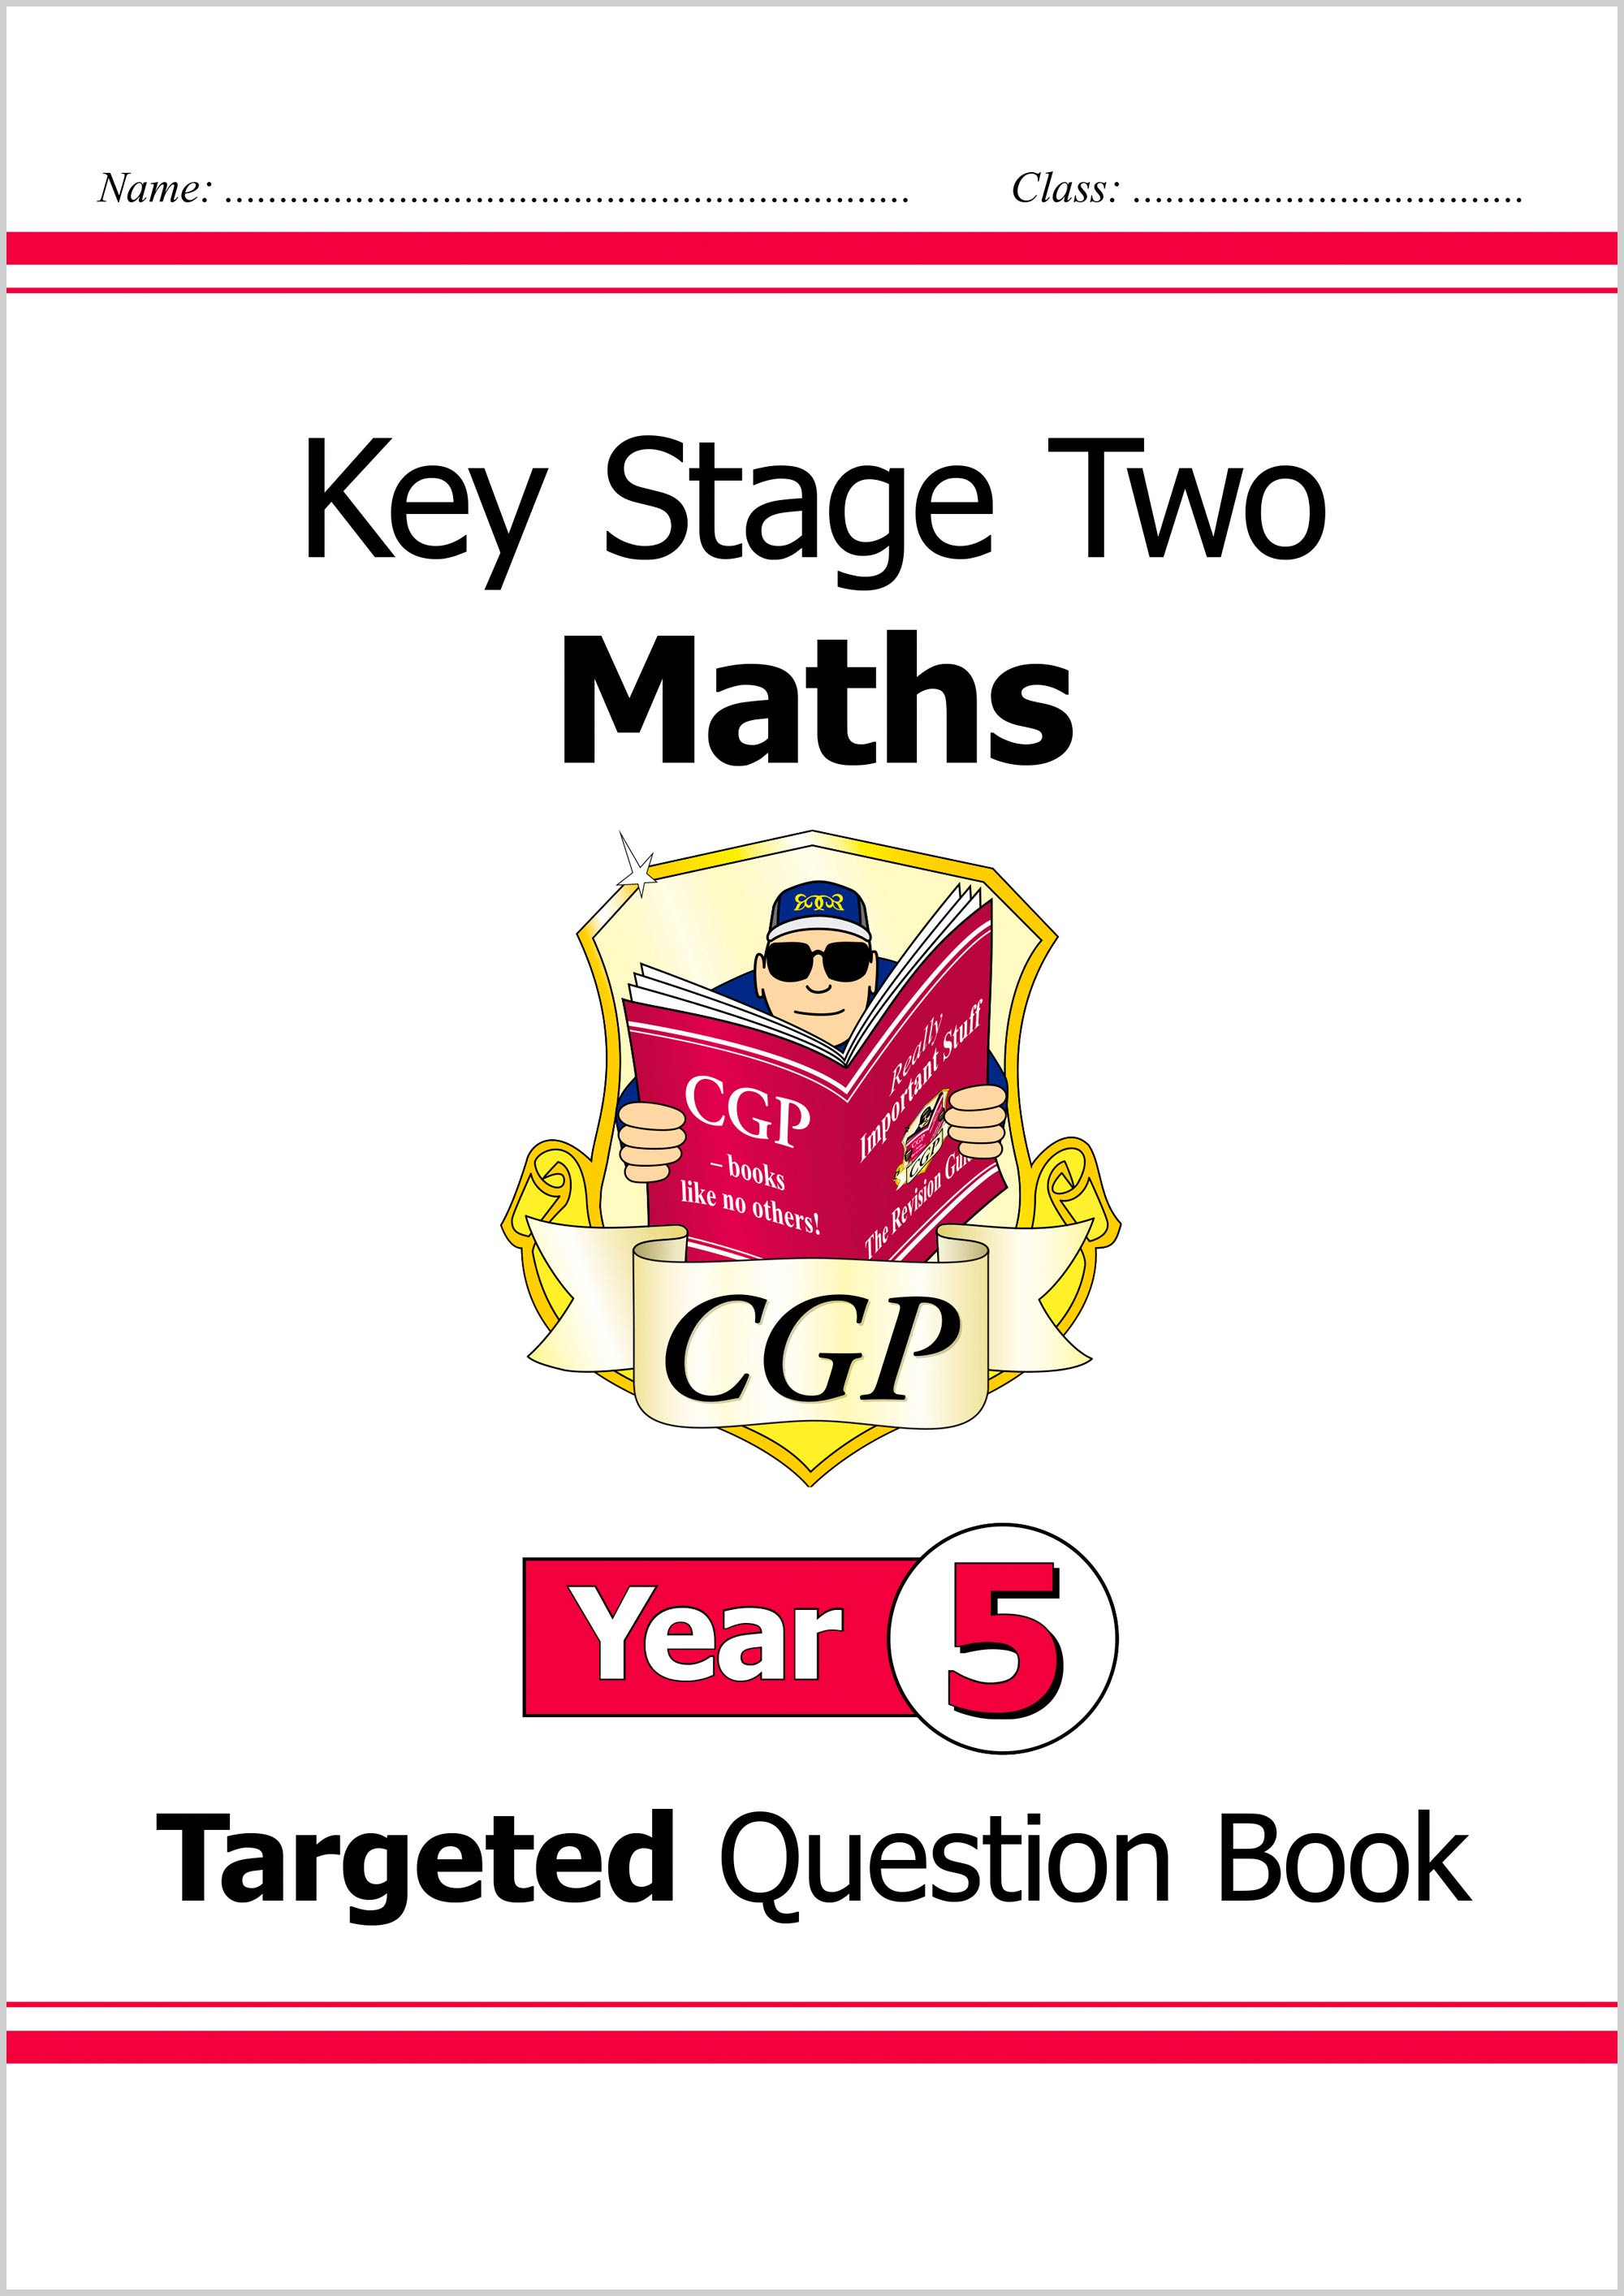 M5Q23DK - KS2 Maths Targeted Question Book - Year 5